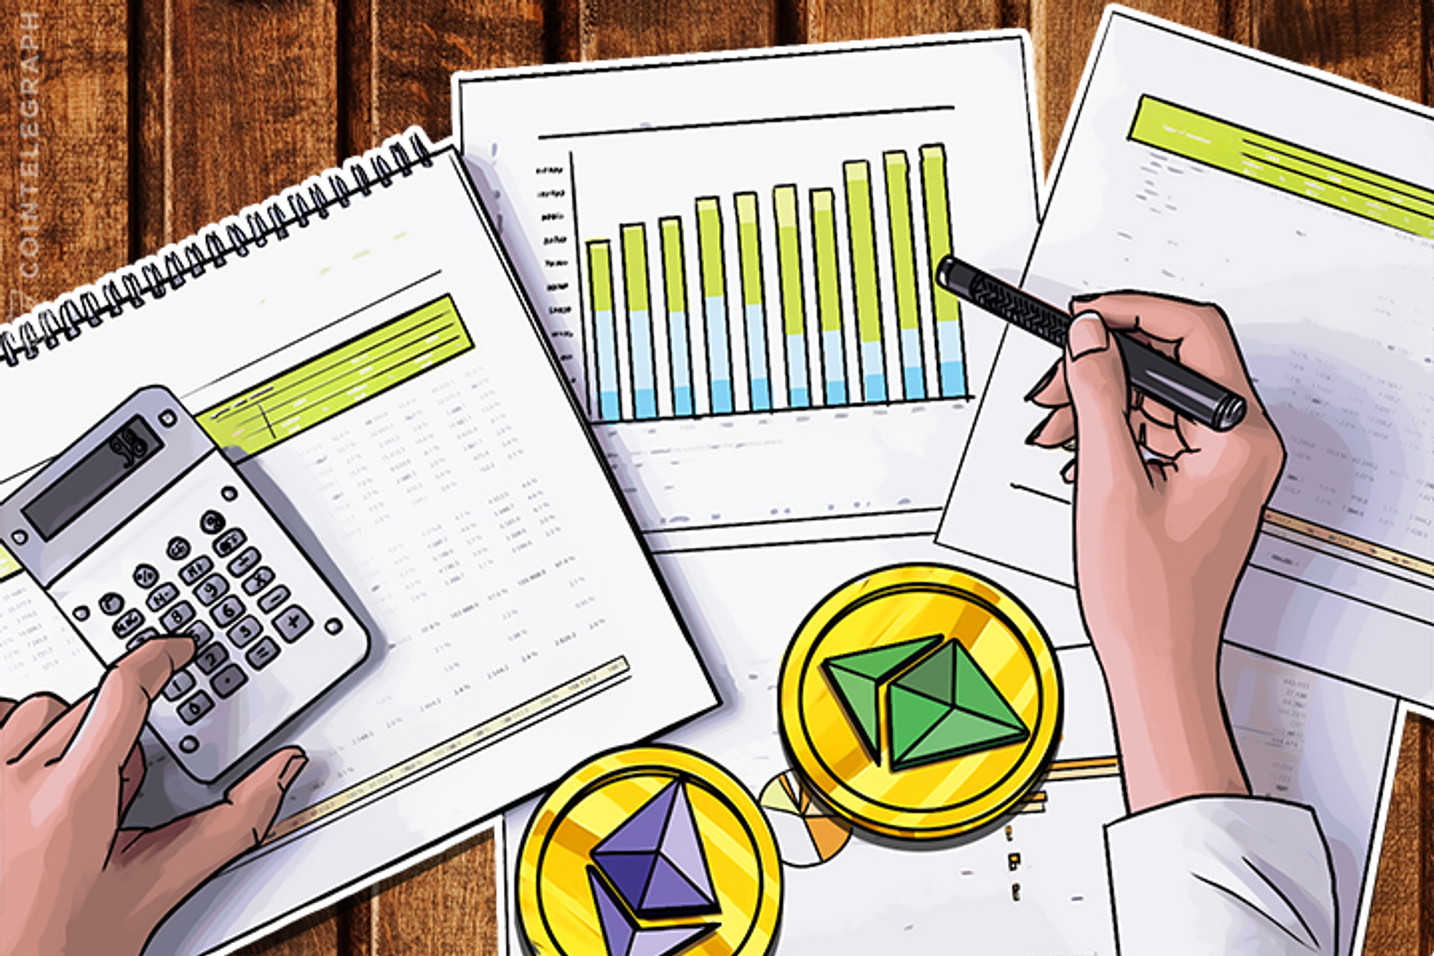 Ethereum Price Analysis: July 11 - July 18